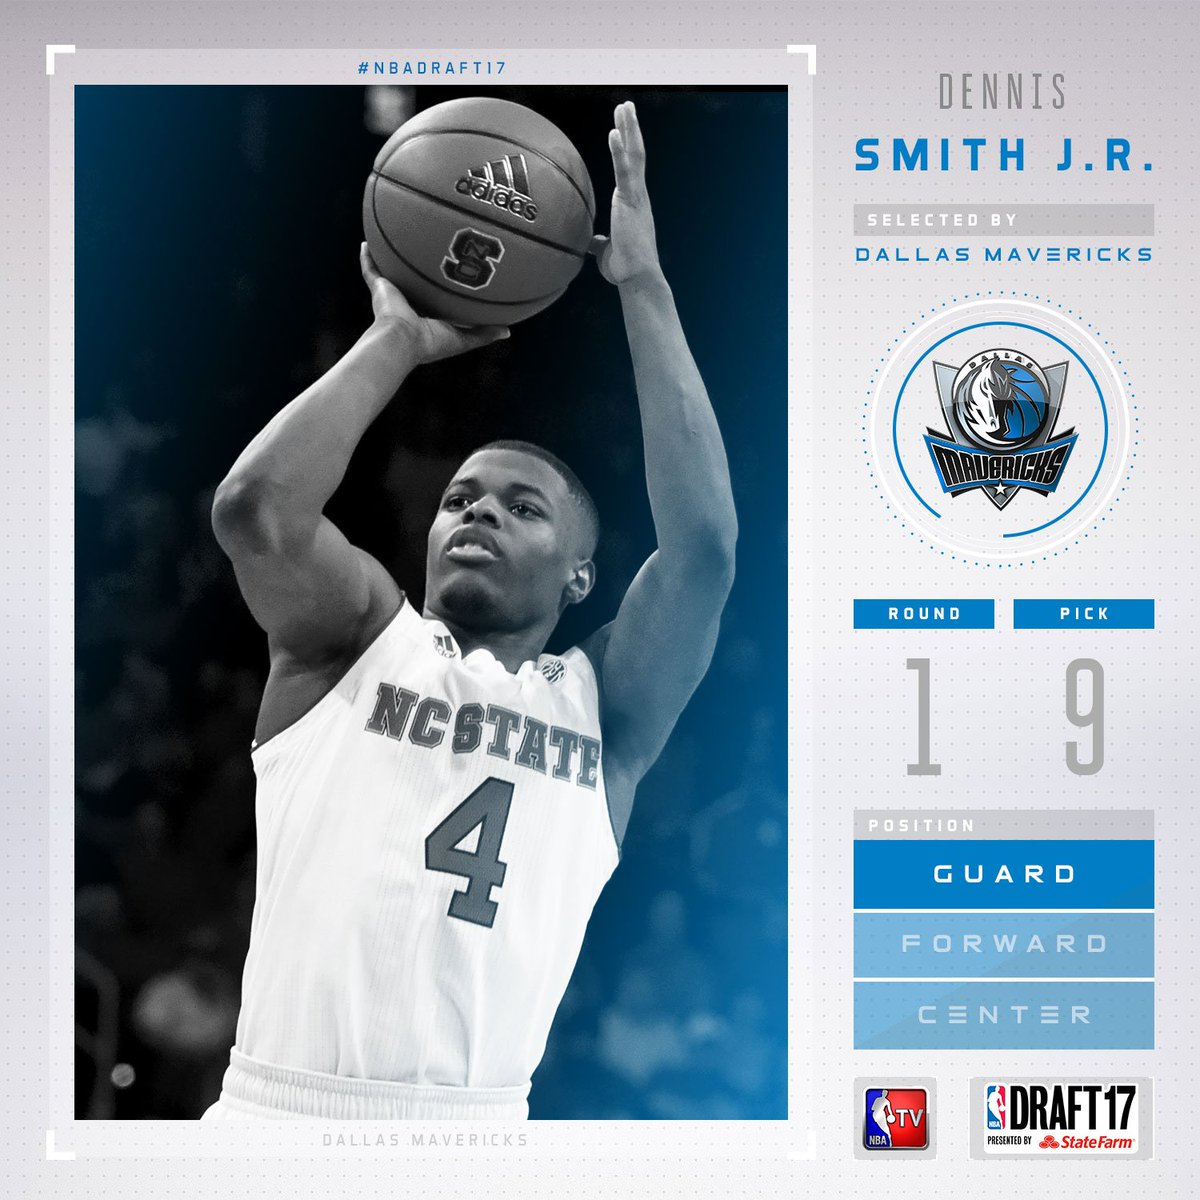 The @dallasmavs select Dennis Smith Jr. with the #9 pick in the 2017 #...